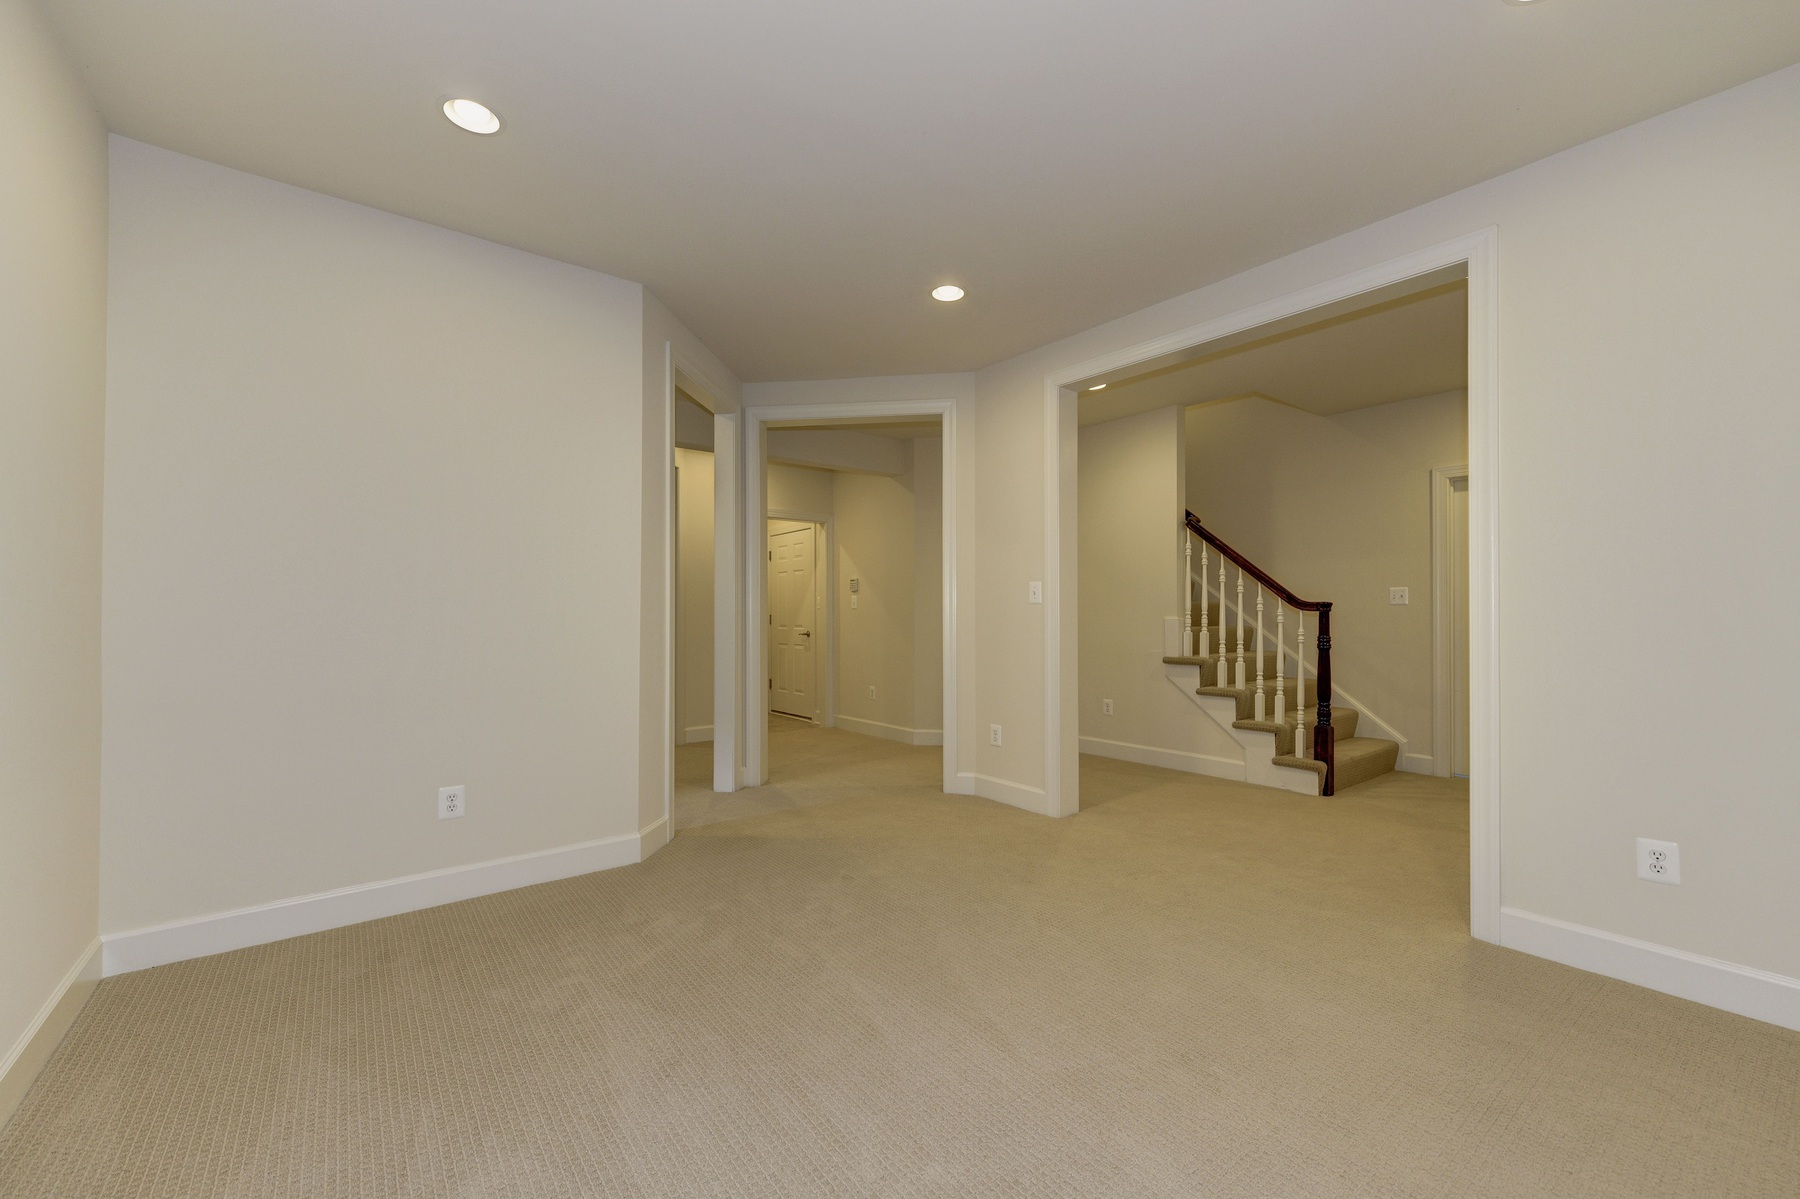 Additional photo for property listing at Cooper Dawson 104 Quaker Lane N Alexandria, 弗吉尼亞州 22304 美國